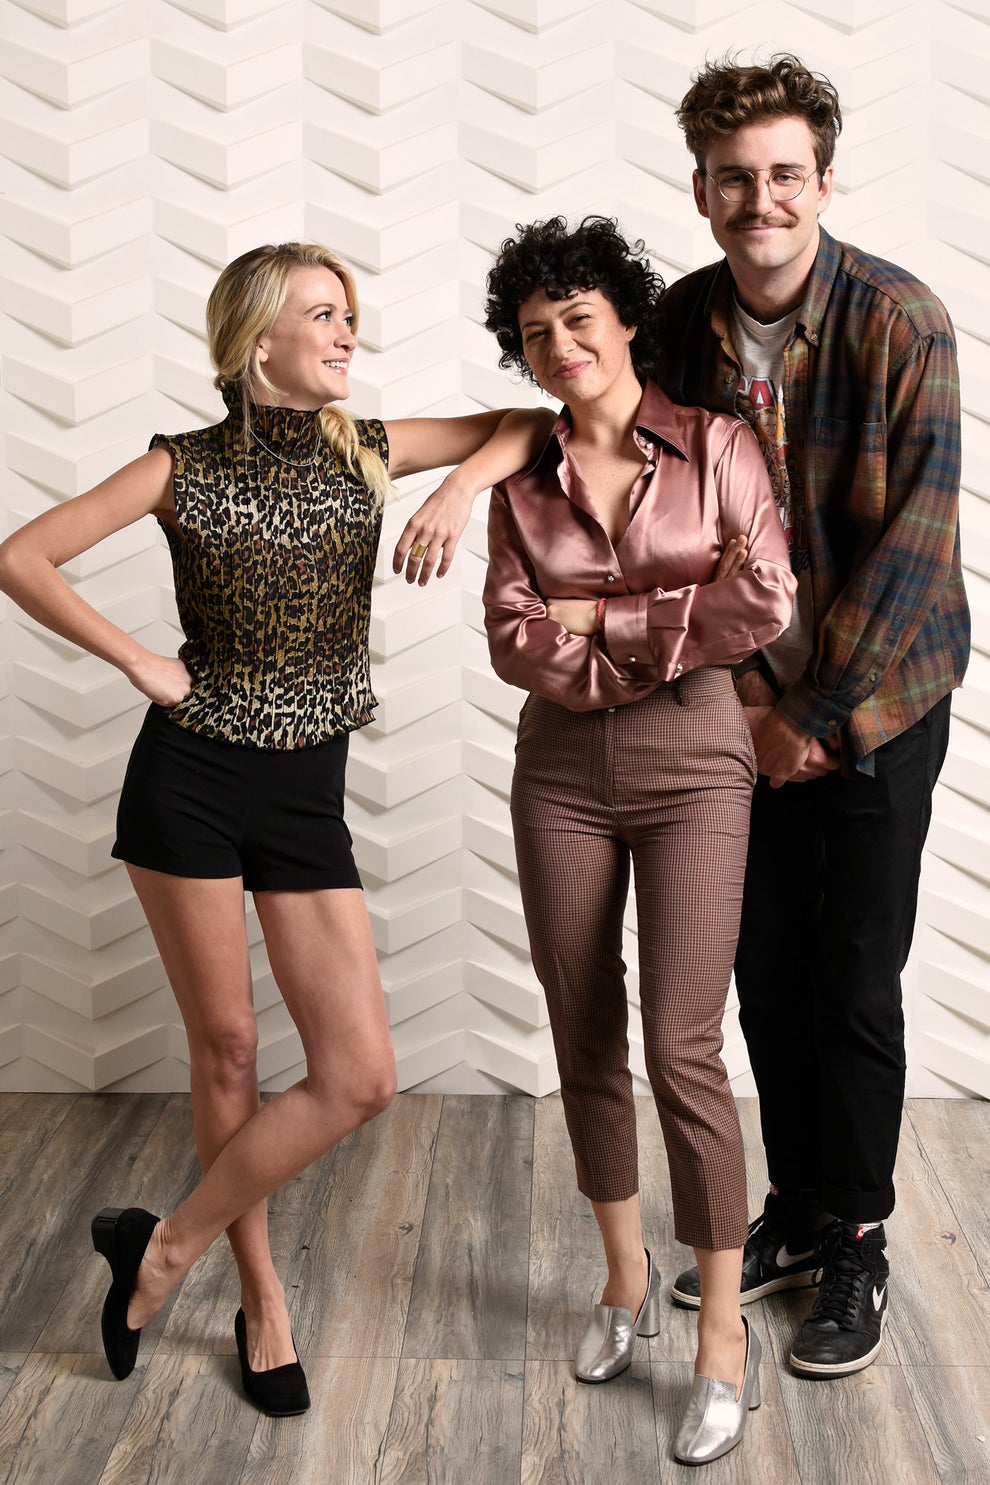 Search Party stars Meredith Hagner, Alia Shawkat, and John Reynolds